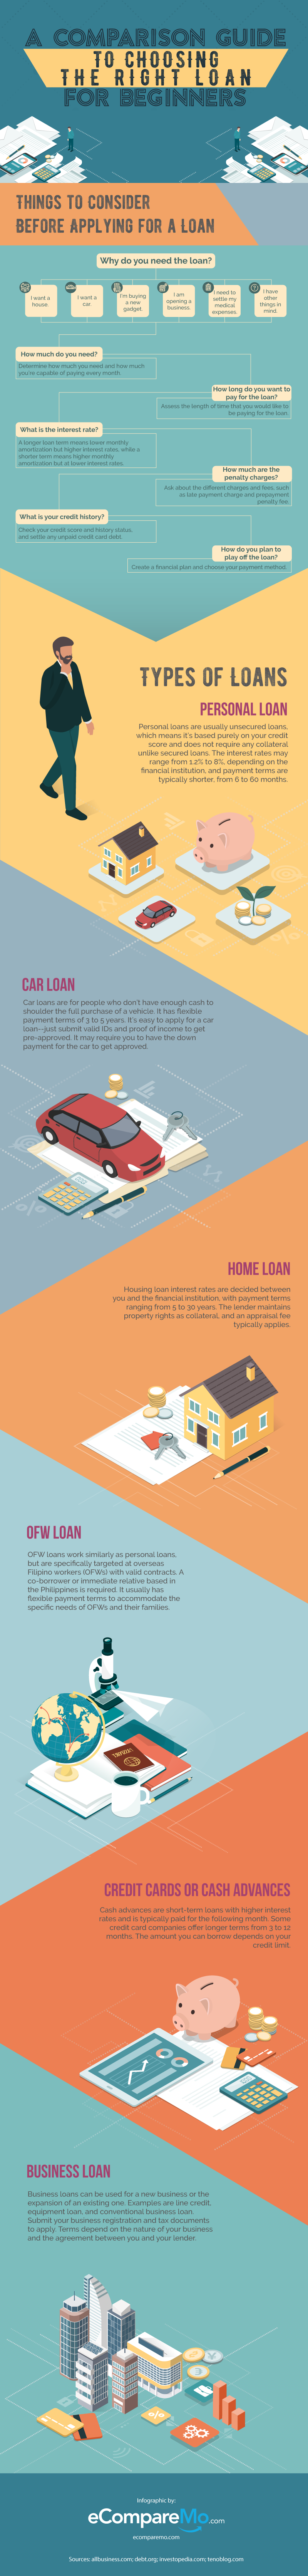 If It S Your First Time To Take A Loan Check Out This Guide Loan Beginnersguide Infographic Finance Loan Guide Personal Loans